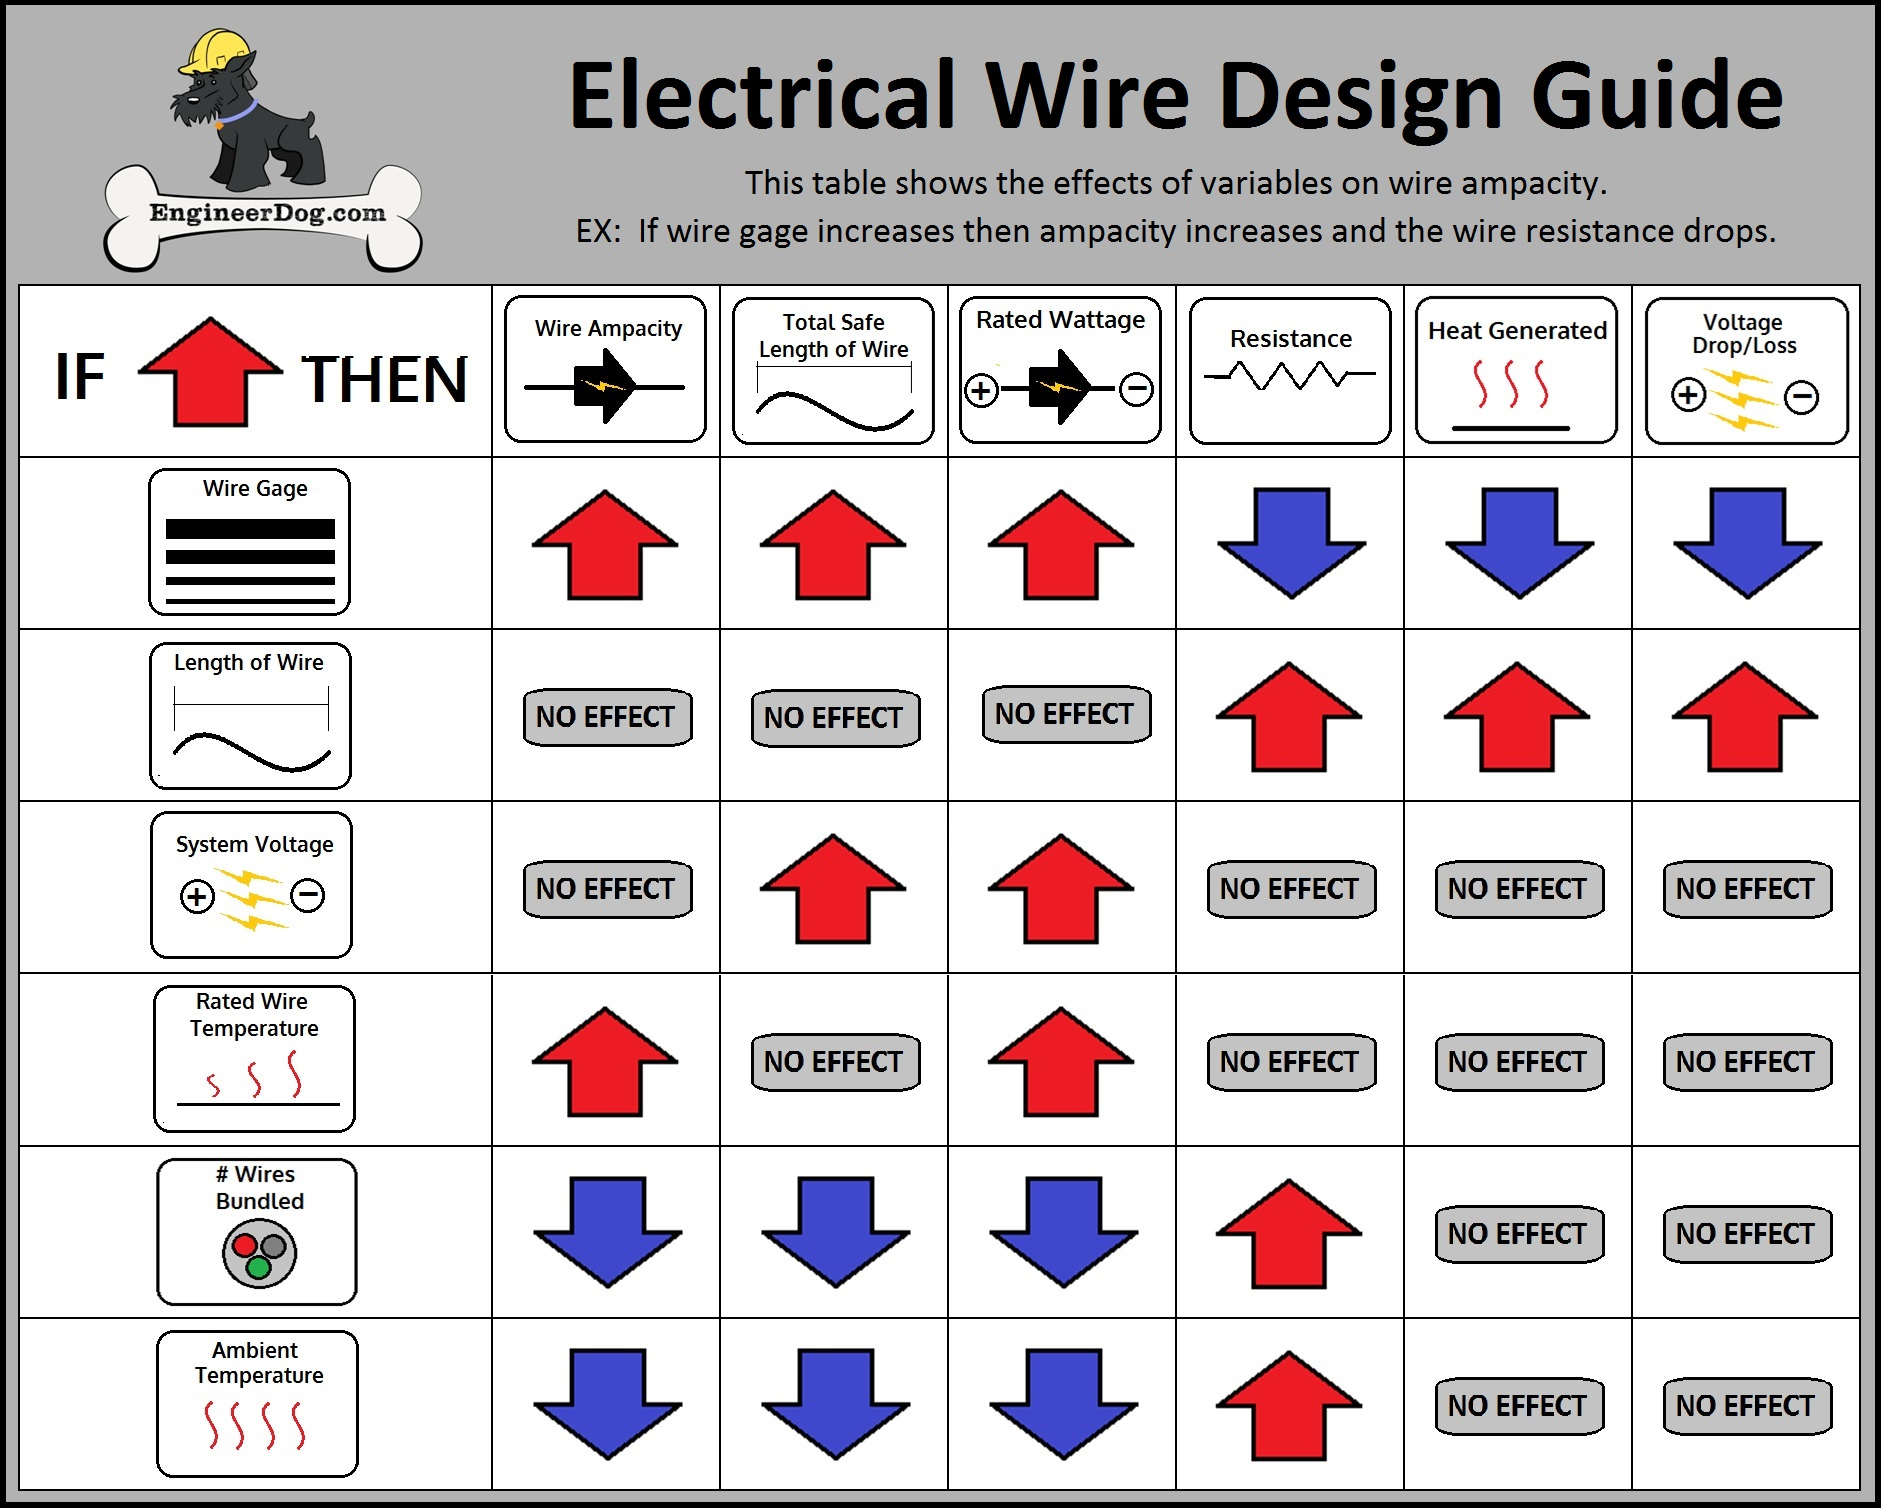 Home Wiring Amp Rating Wiring Diagram Awg Wire Gauge Chart Elect Wiring Diagram With Symbols For